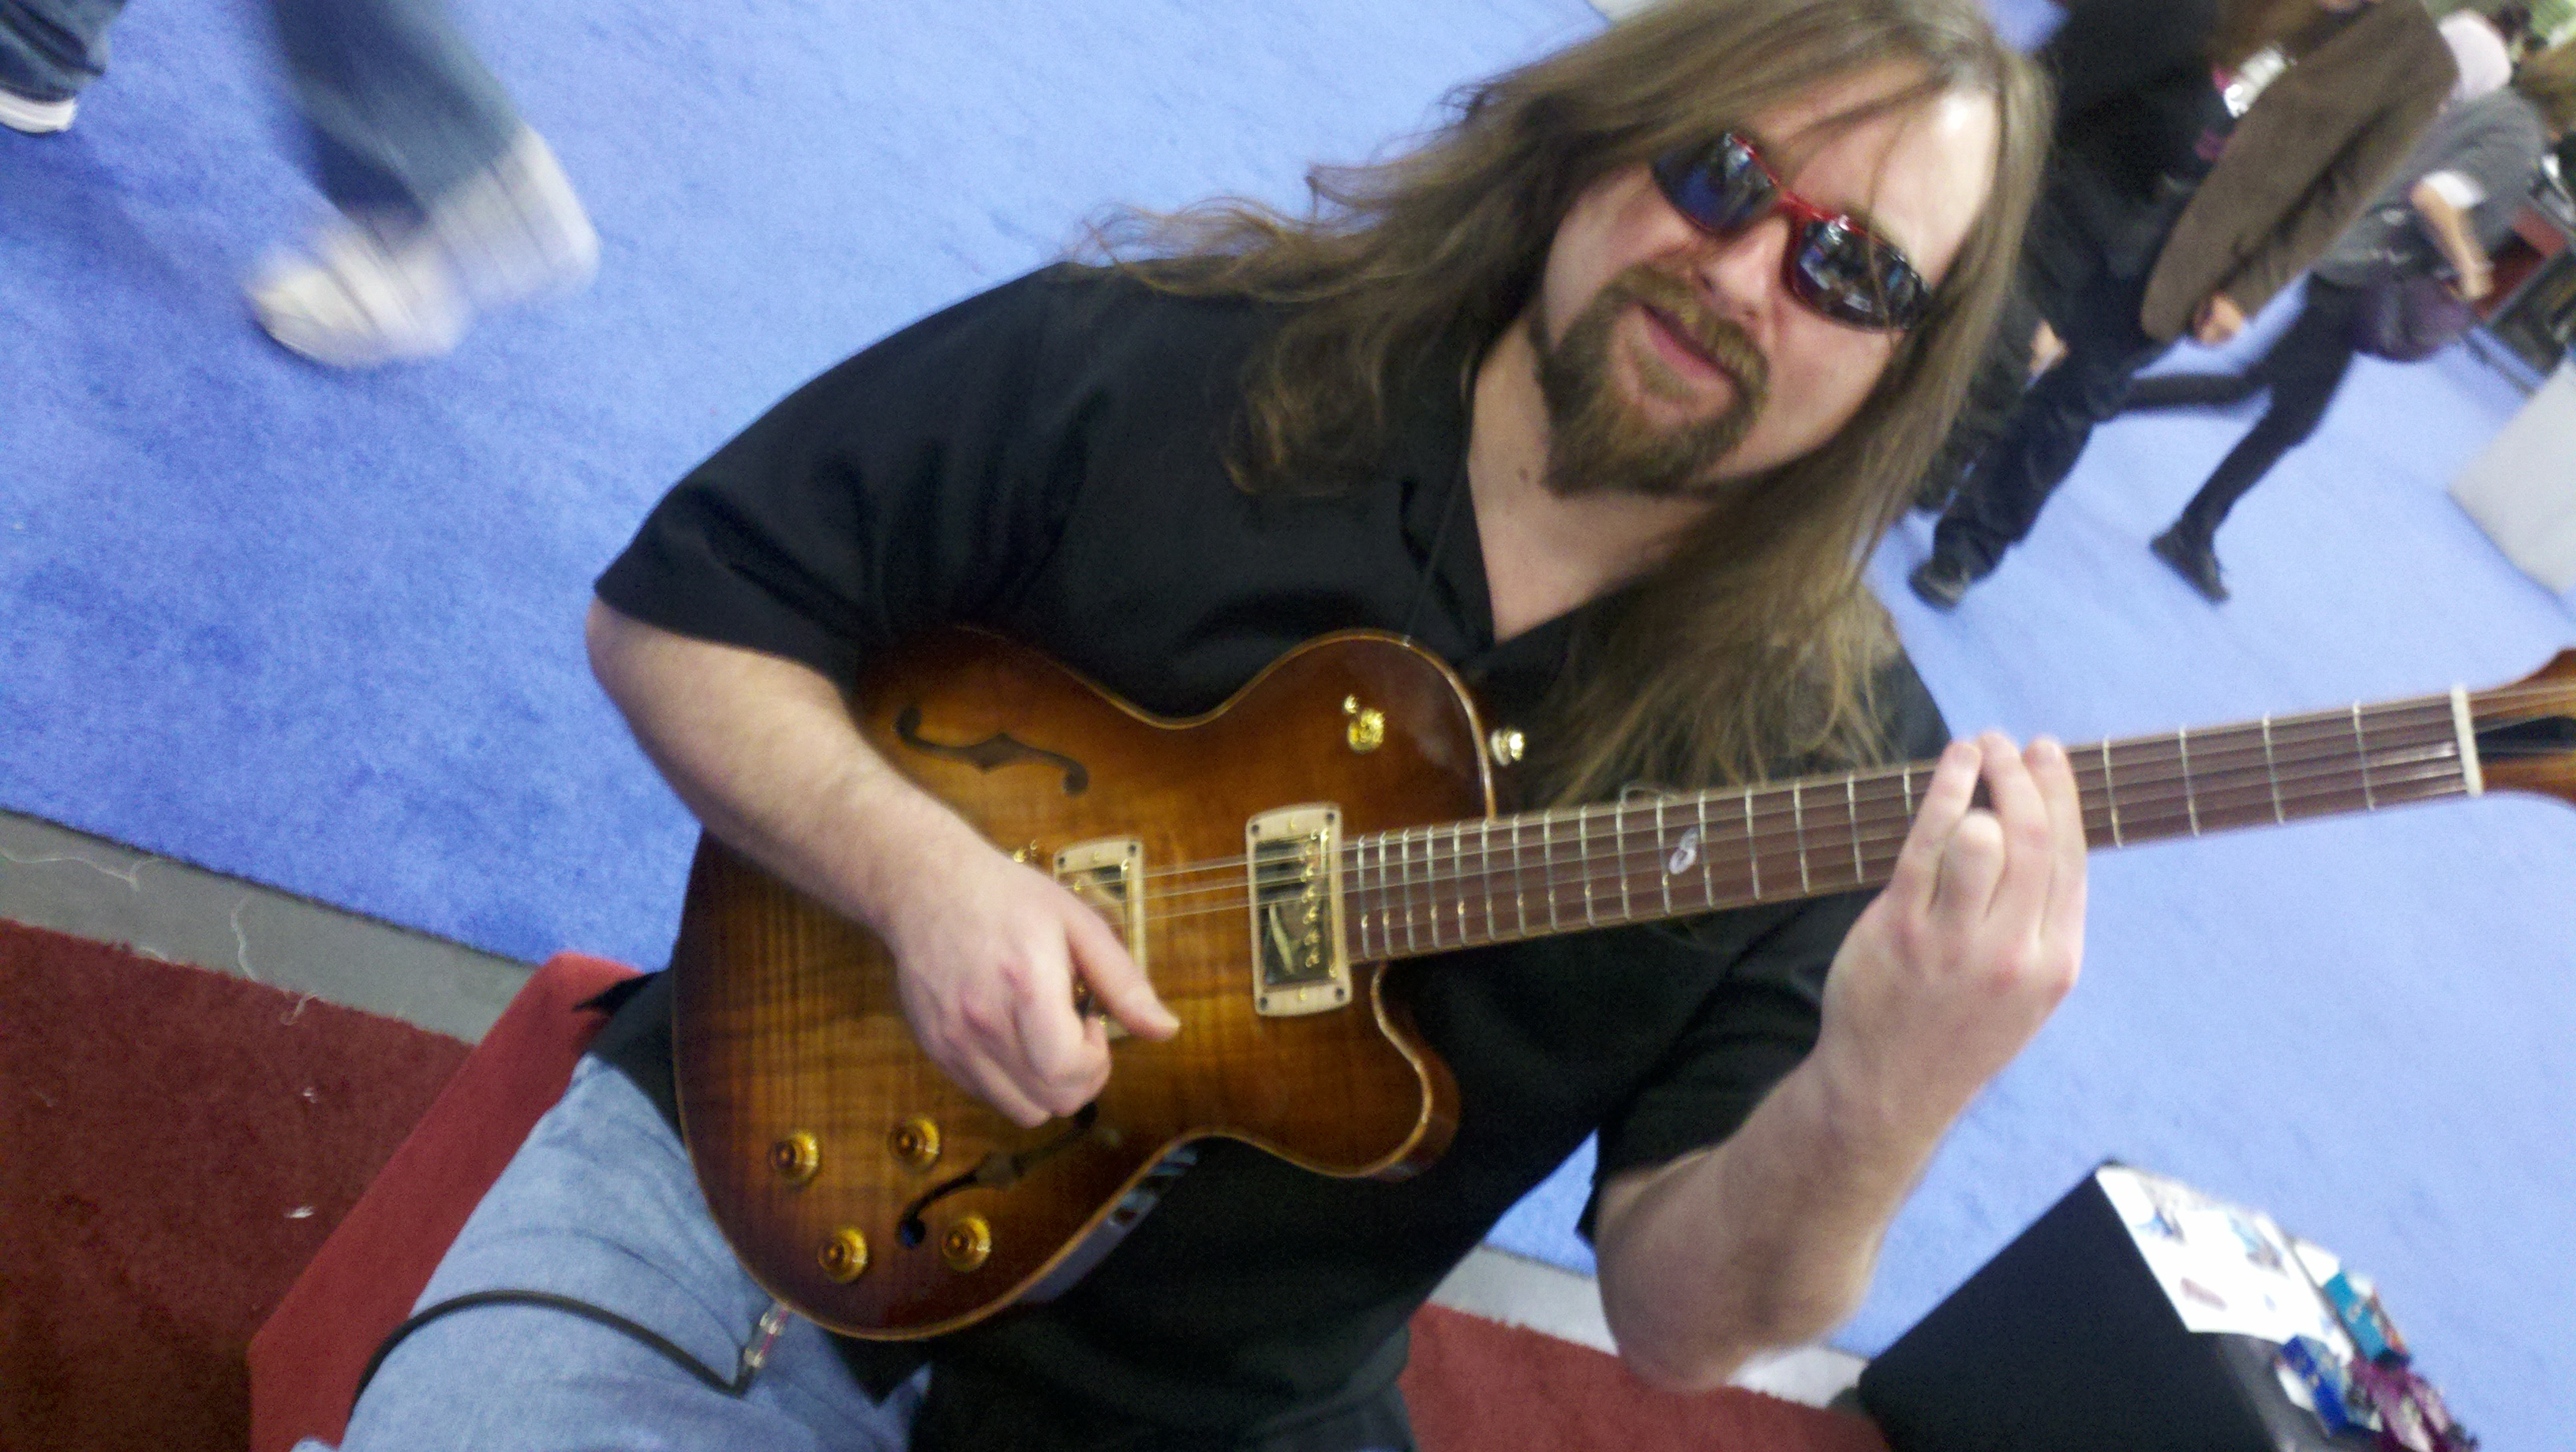 sweetwood guitar co blog knowledge base jay roberts the prodigal son of fusion legend howard roberts who has a gibson model d after him we are currently in the works of creating a